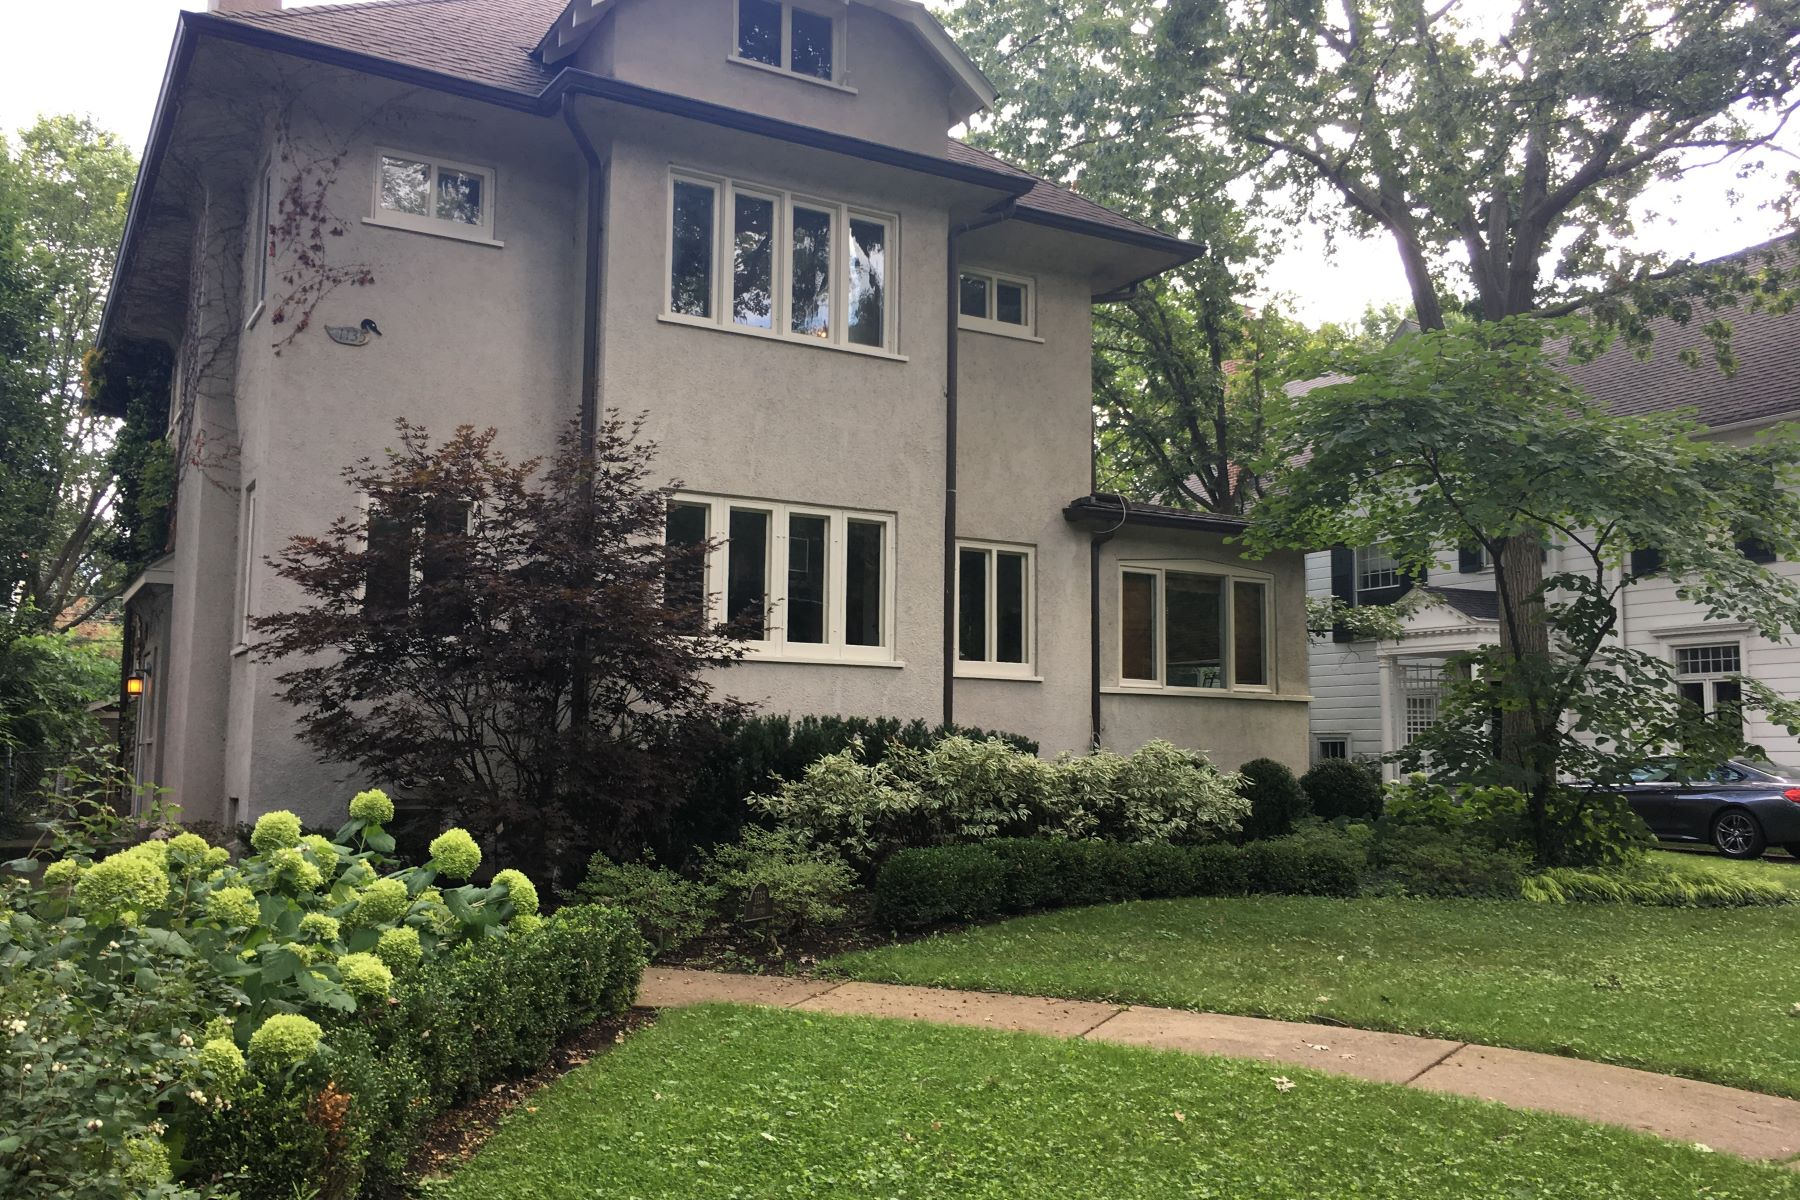 Single Family Home for Active at Sunny And Charming 1135 Michigan Avenue Evanston, Illinois 60202 United States